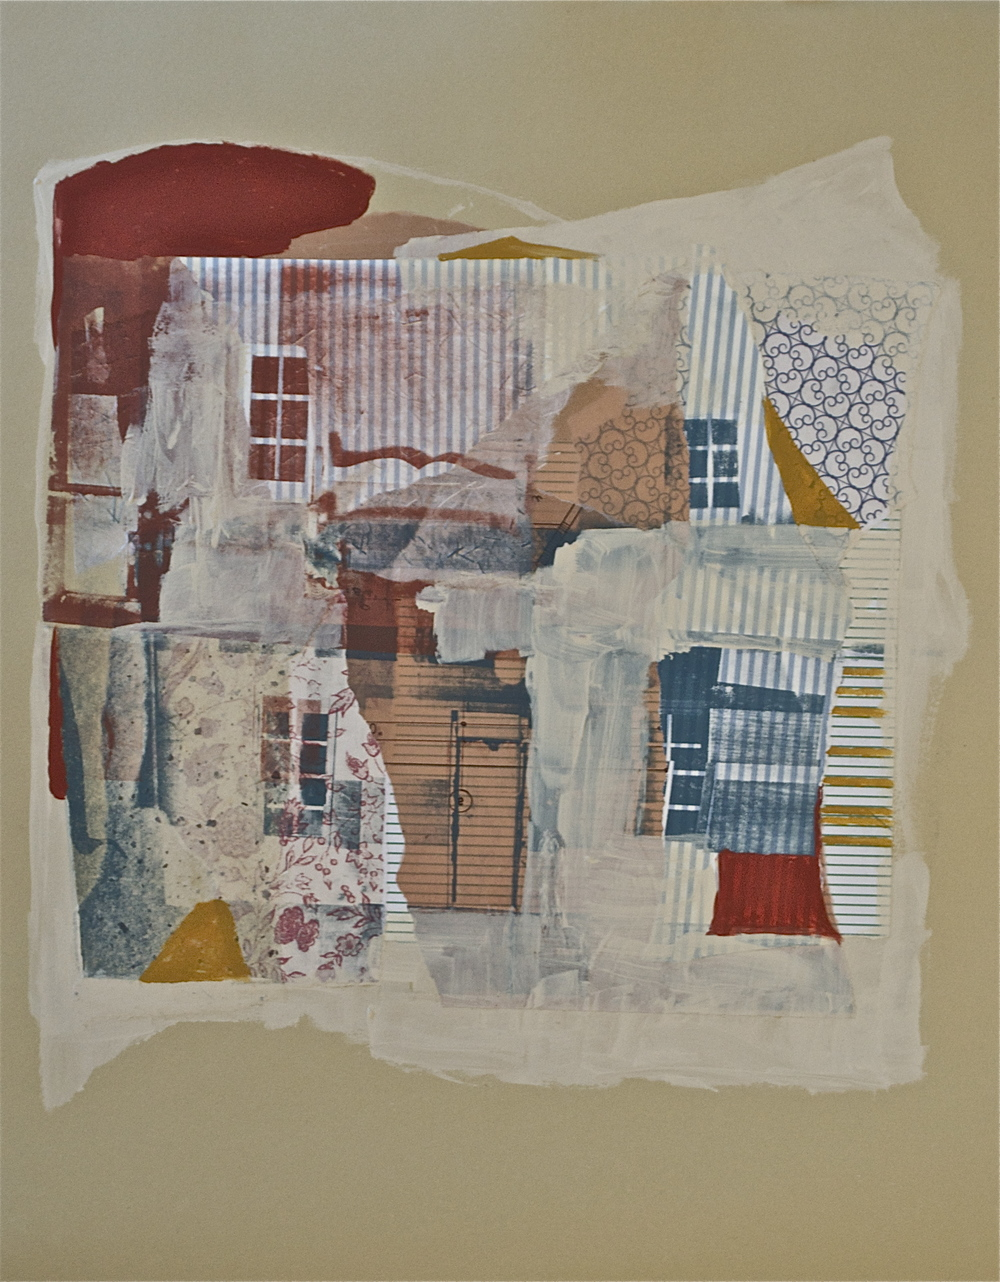 """Pieces Of A Broken House,  2013, Serigraphy, Chine Collé, Acrylic on Paper, 20"""" x 16"""" inches"""